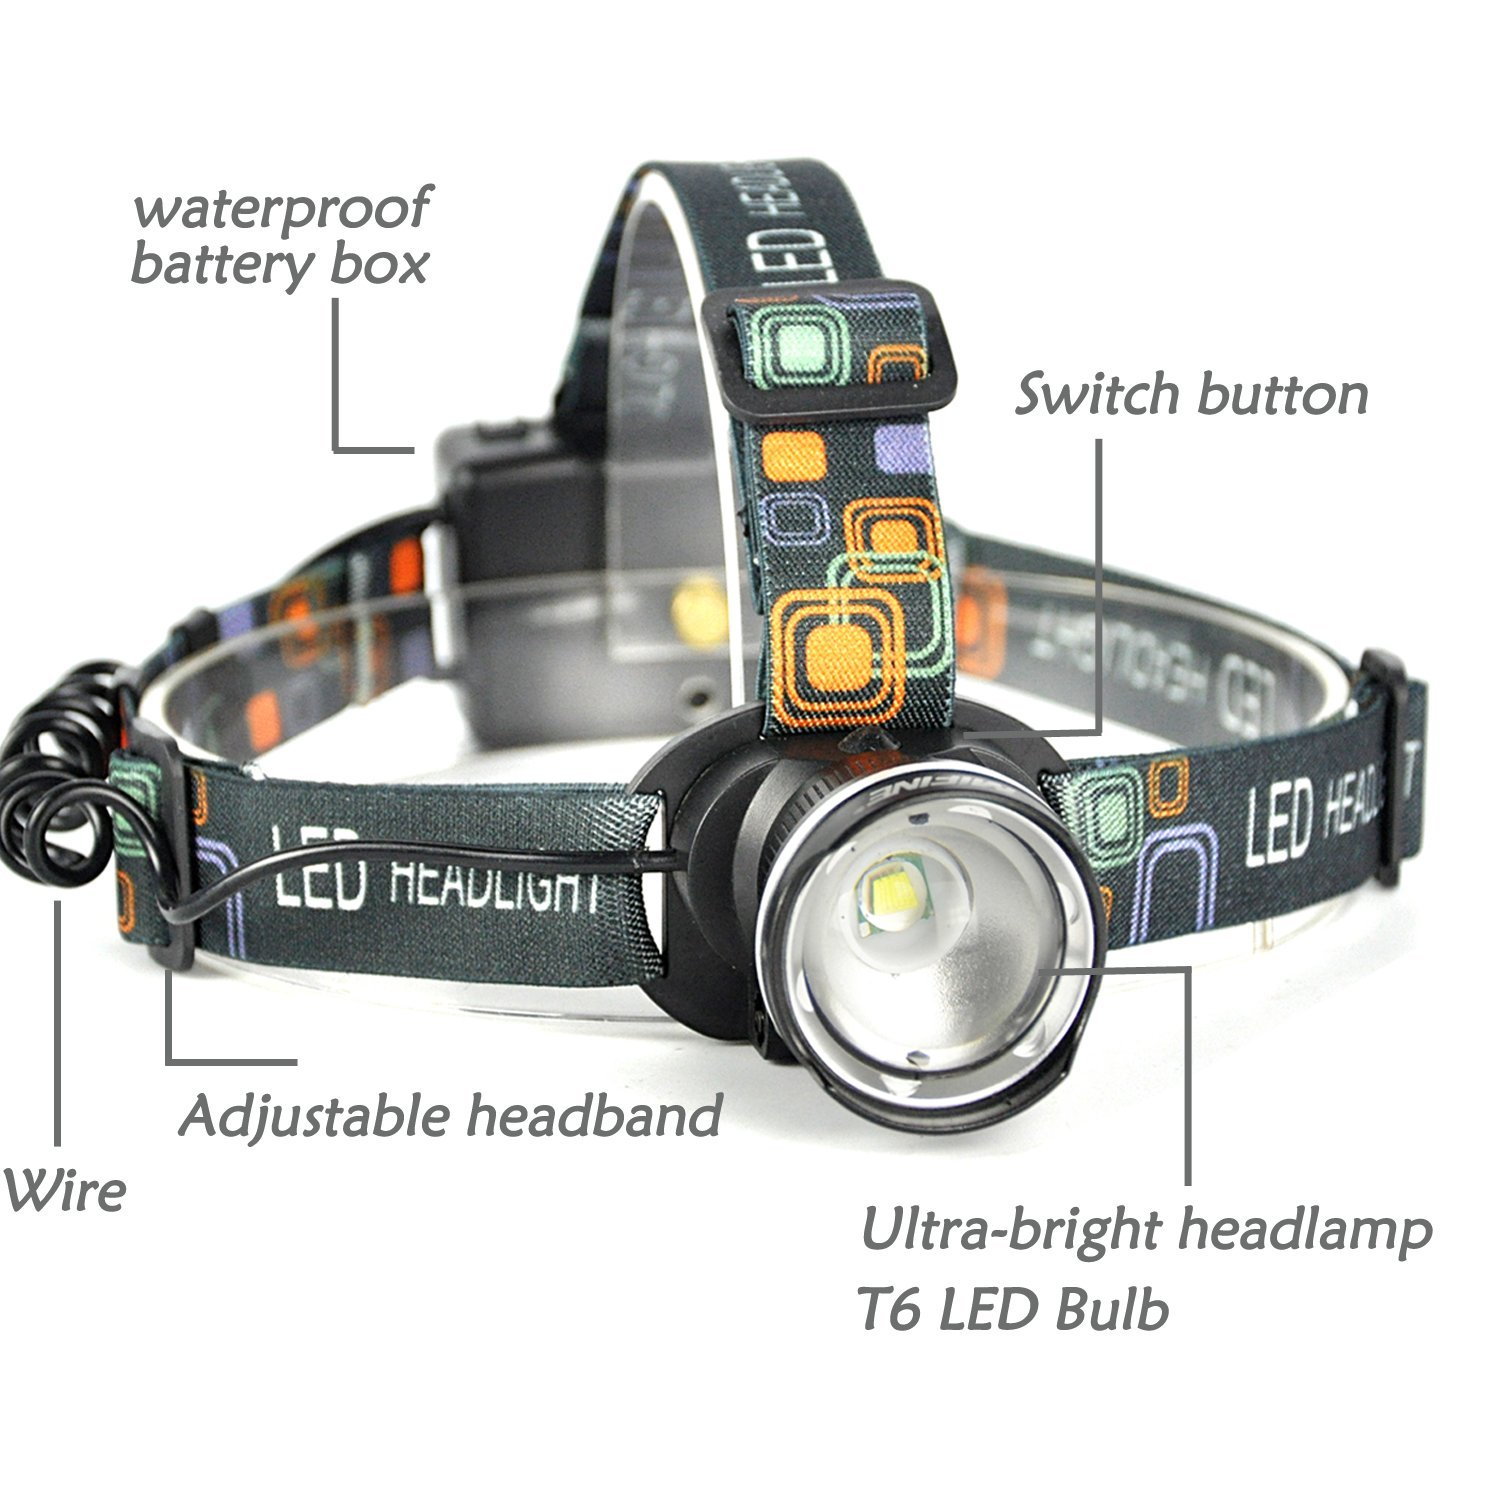 Three Favorite Headlamp Flashlights for Detecting